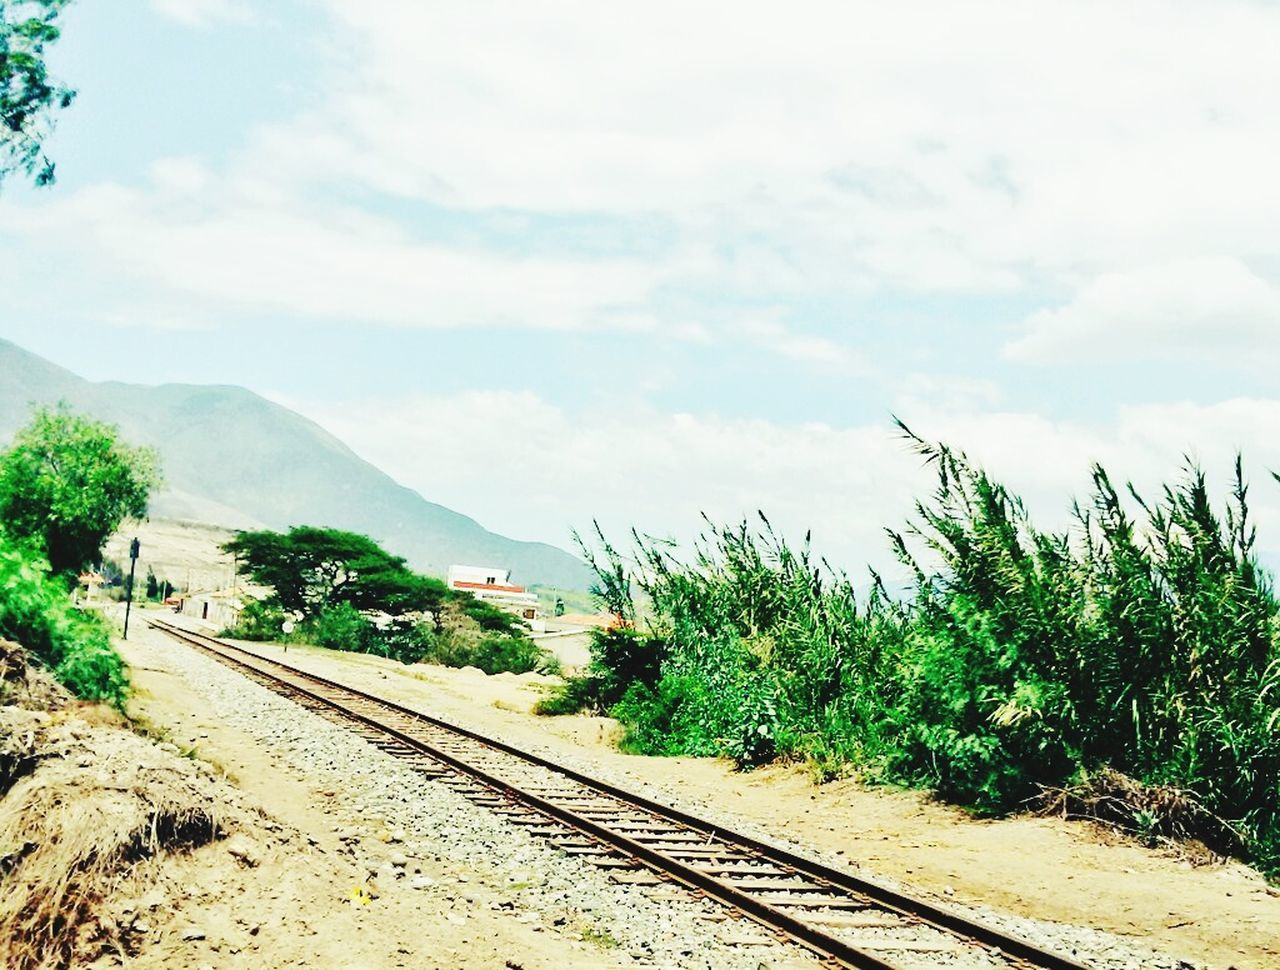 railroad track, transportation, sky, rail transportation, cloud - sky, day, track, nature, the way forward, railway track, outdoors, no people, plant, scenics, tree, railroad, beauty in nature